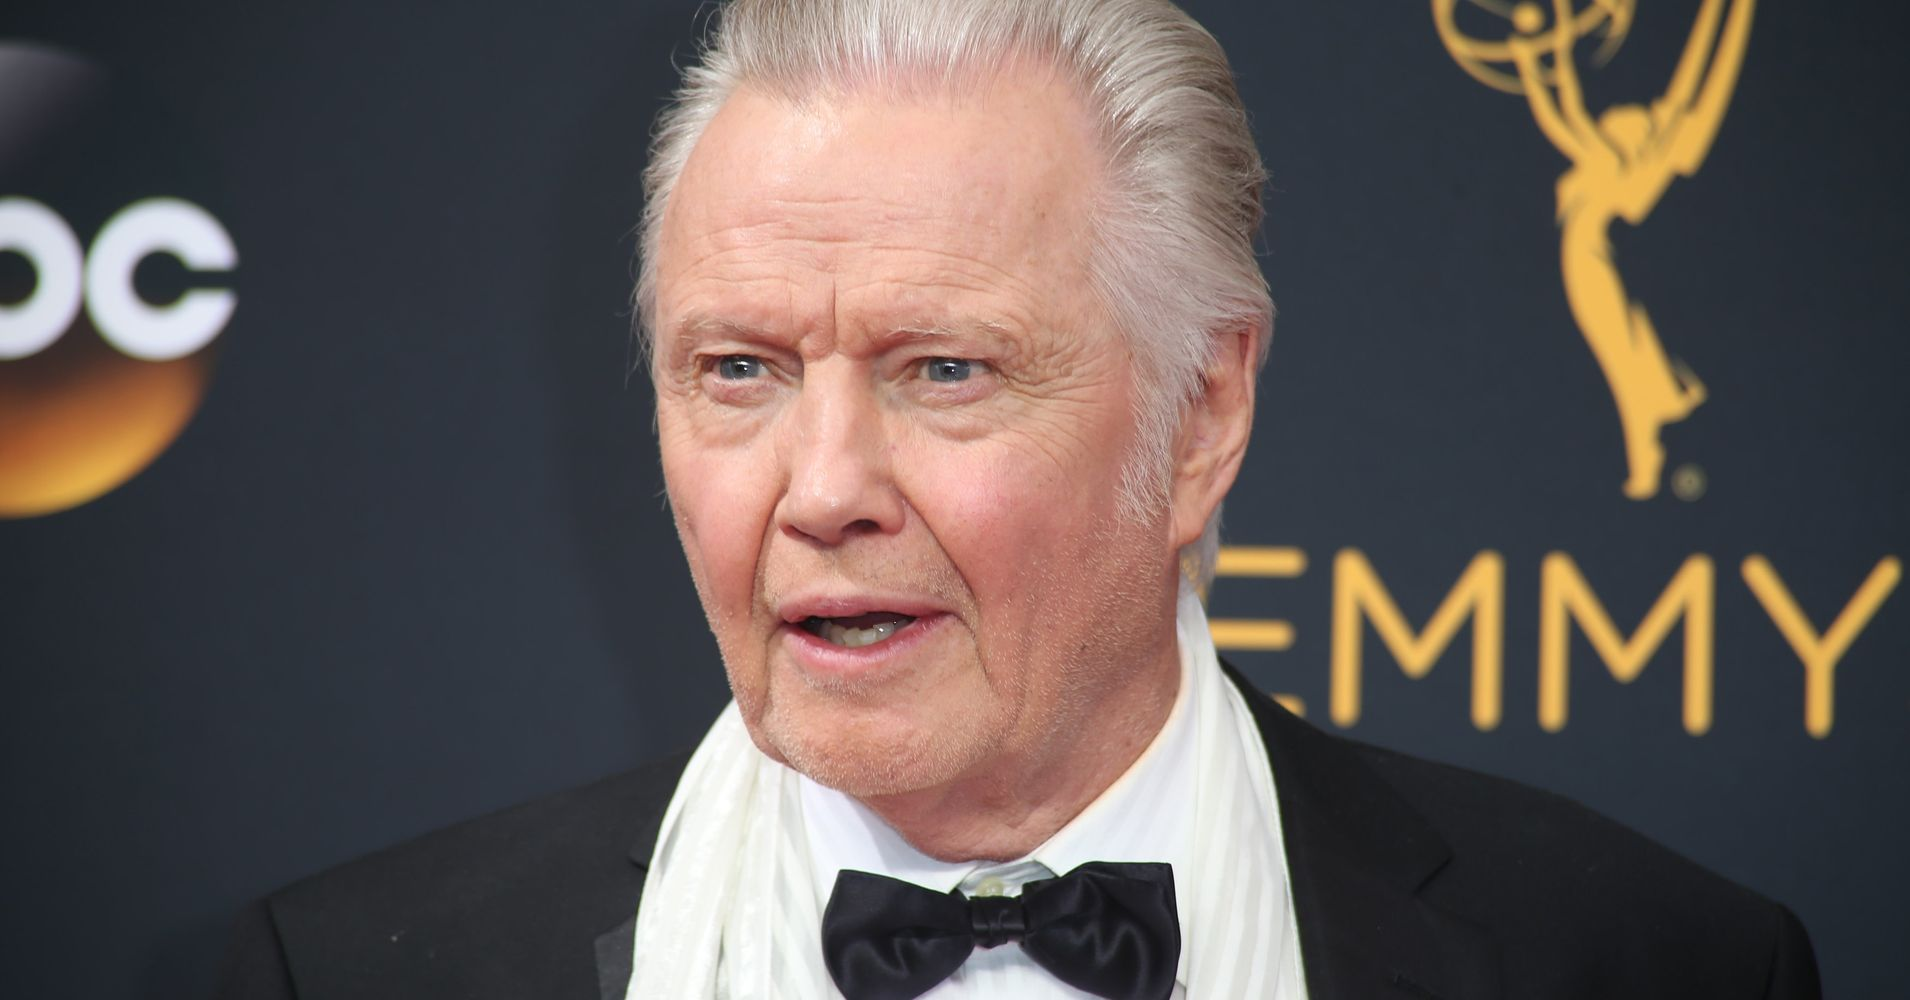 Jon Voight Plays Down Donald Trump's Offensive Comments About Women | HuffPost